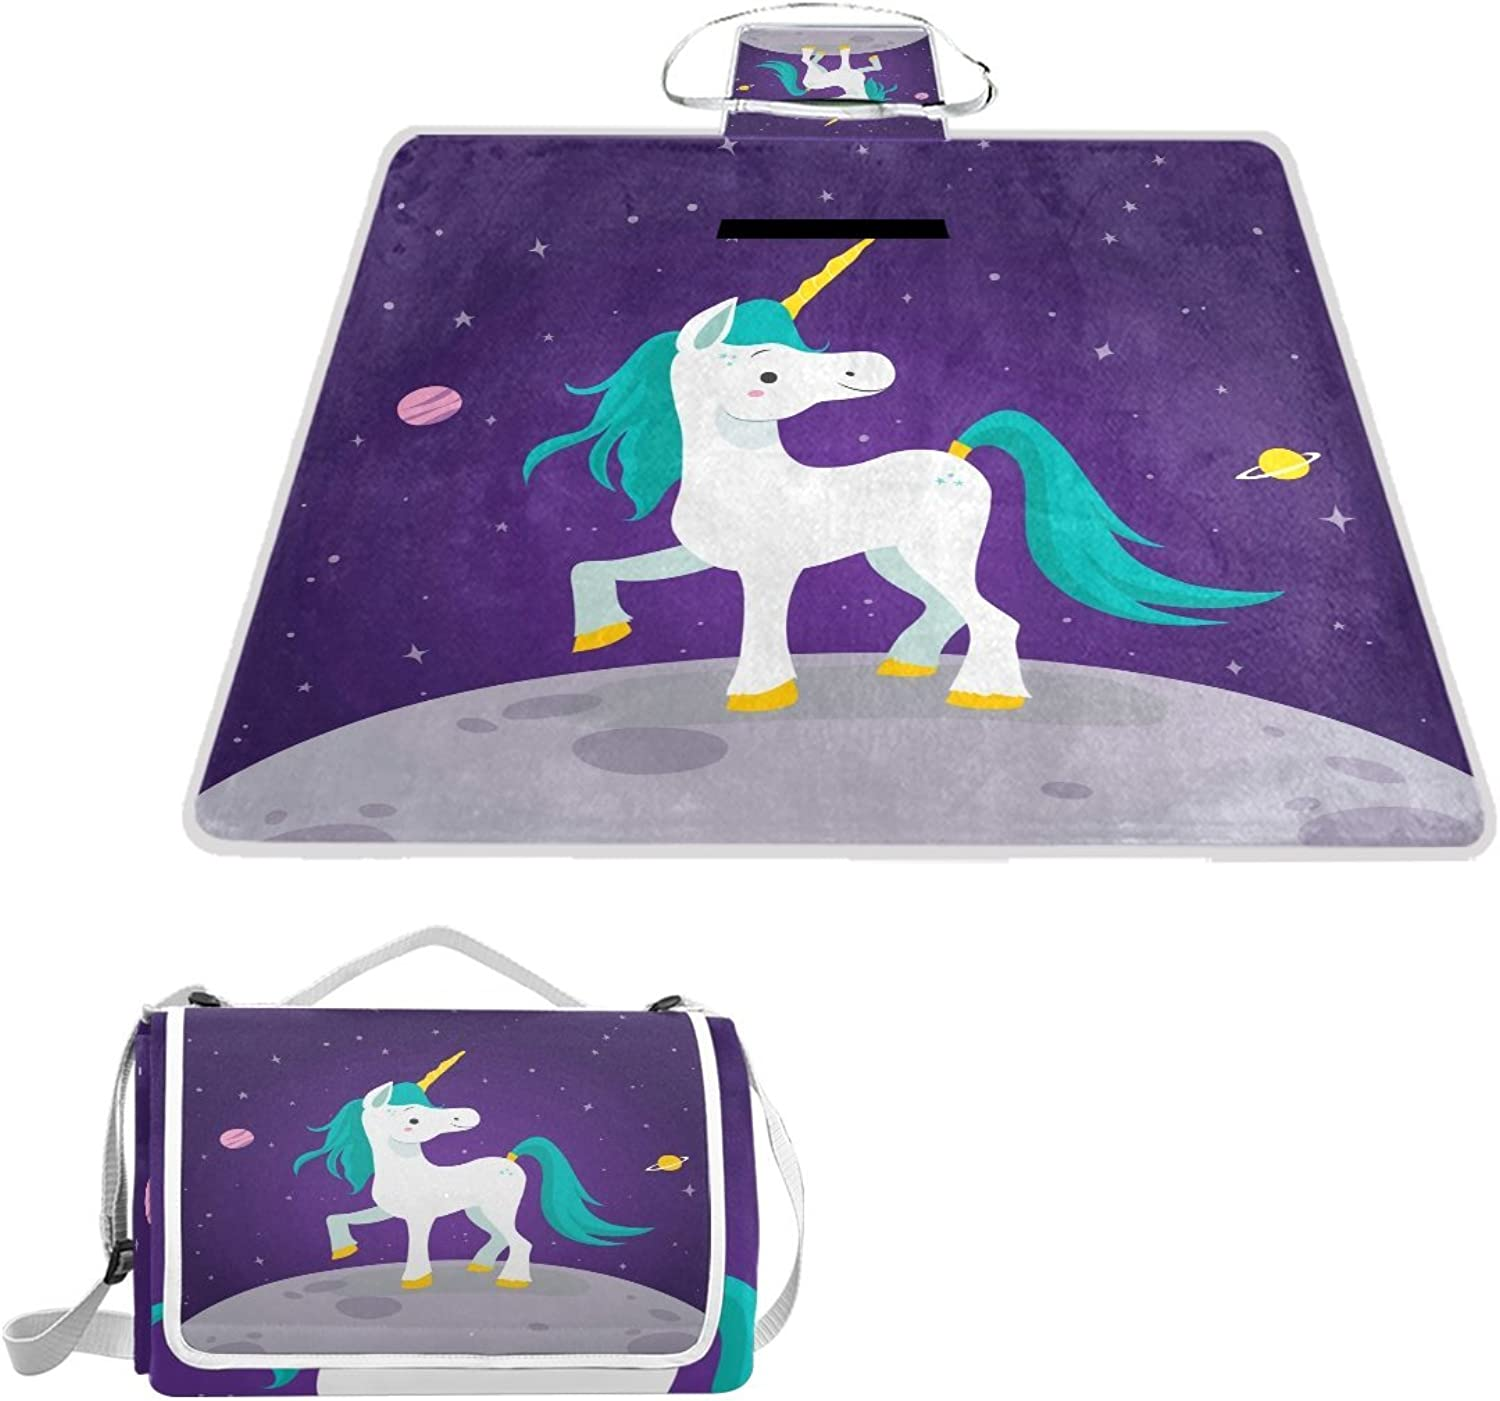 LiKai Picnic Blanket Moon Unicorn Foldable Portable Waterproof Outdoor Travelling Camping Beach Mat